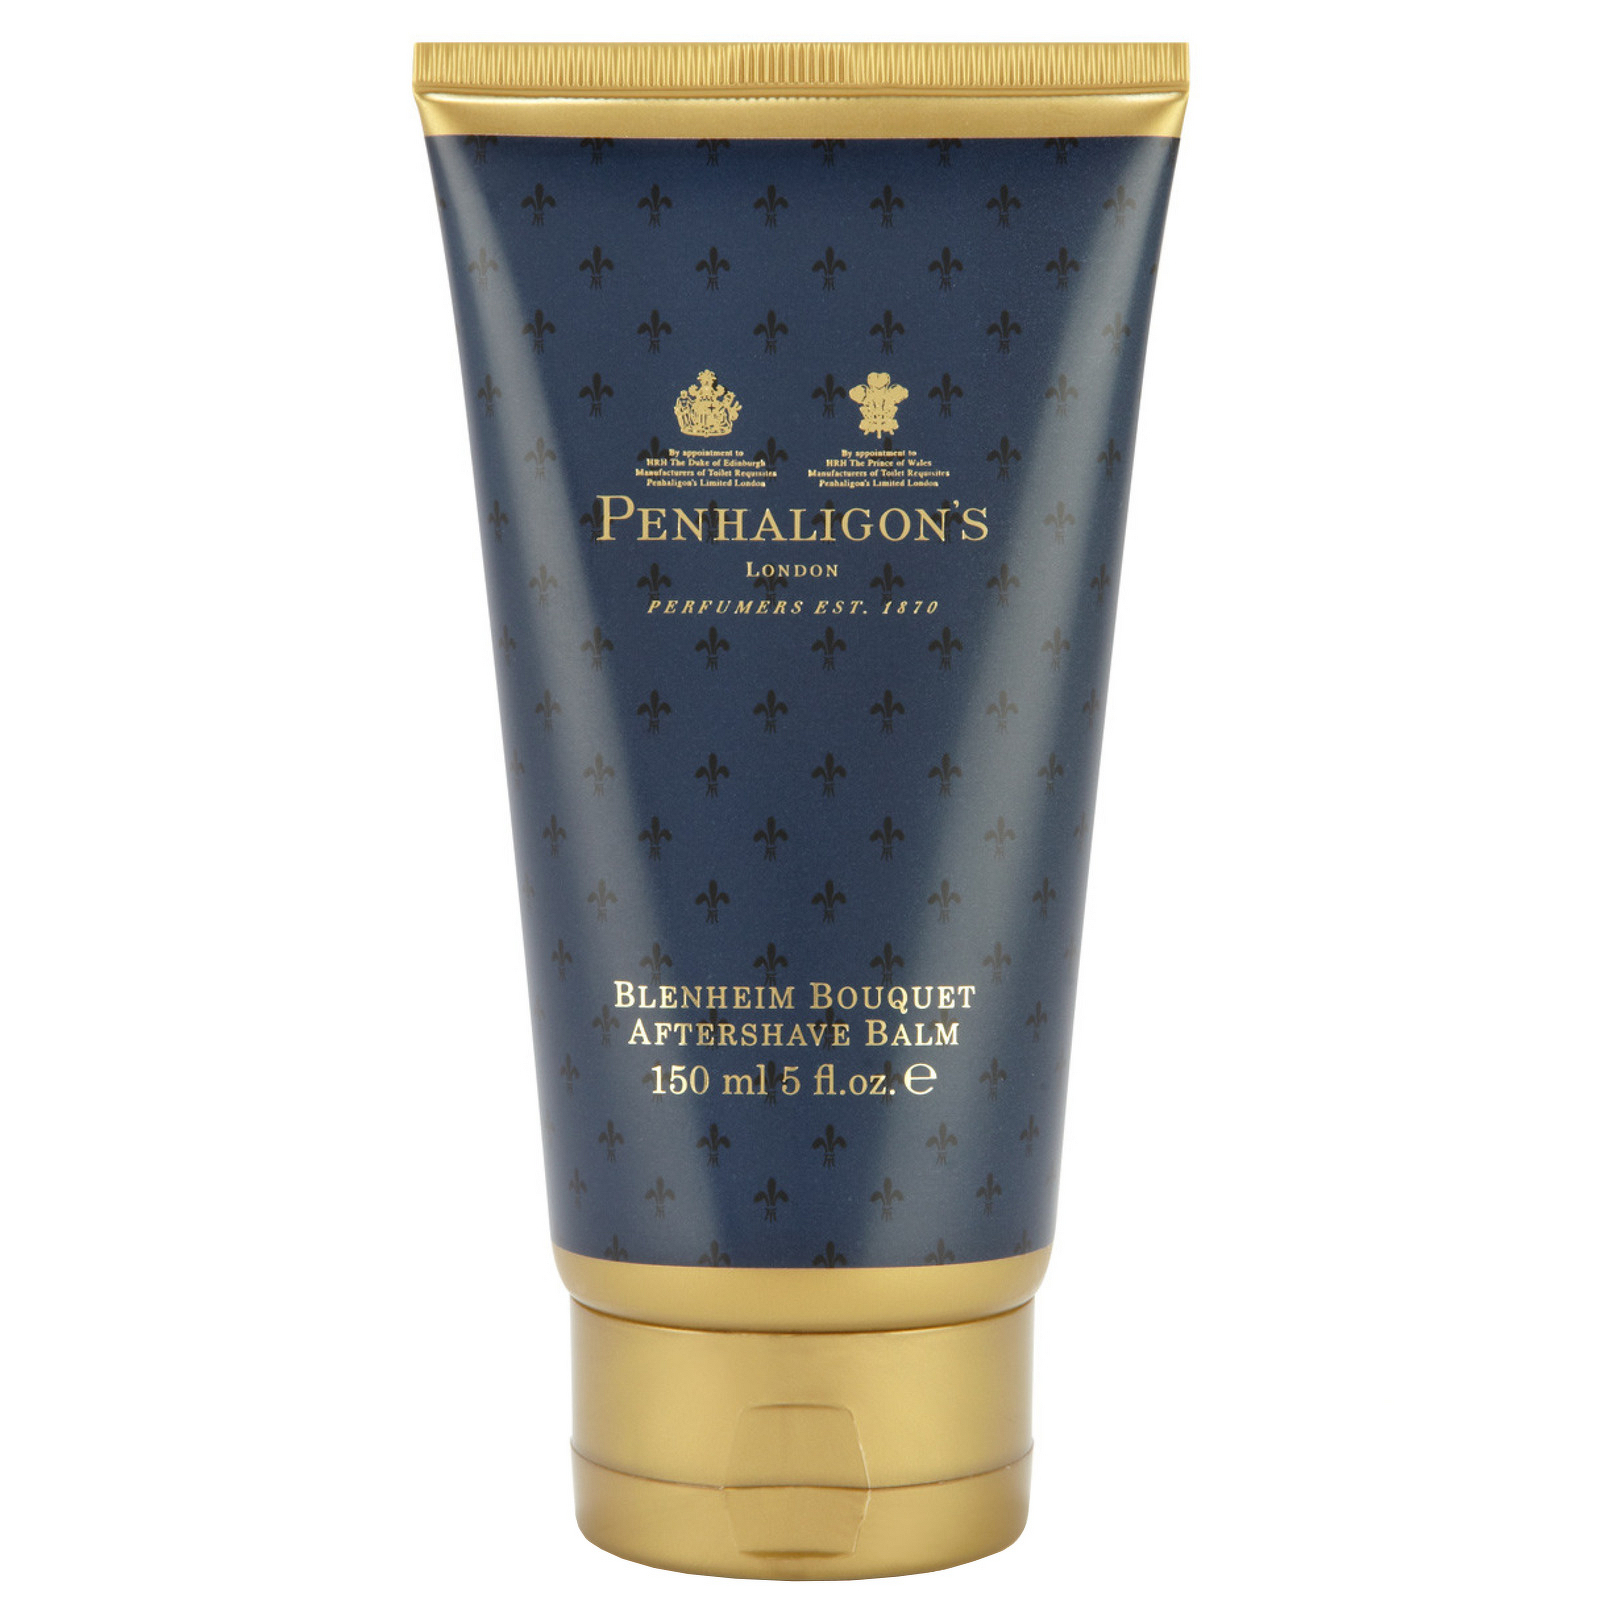 Penhaligon's Blenheim Bouquet Aftershave Balm 150ml / 5 fl.oz.